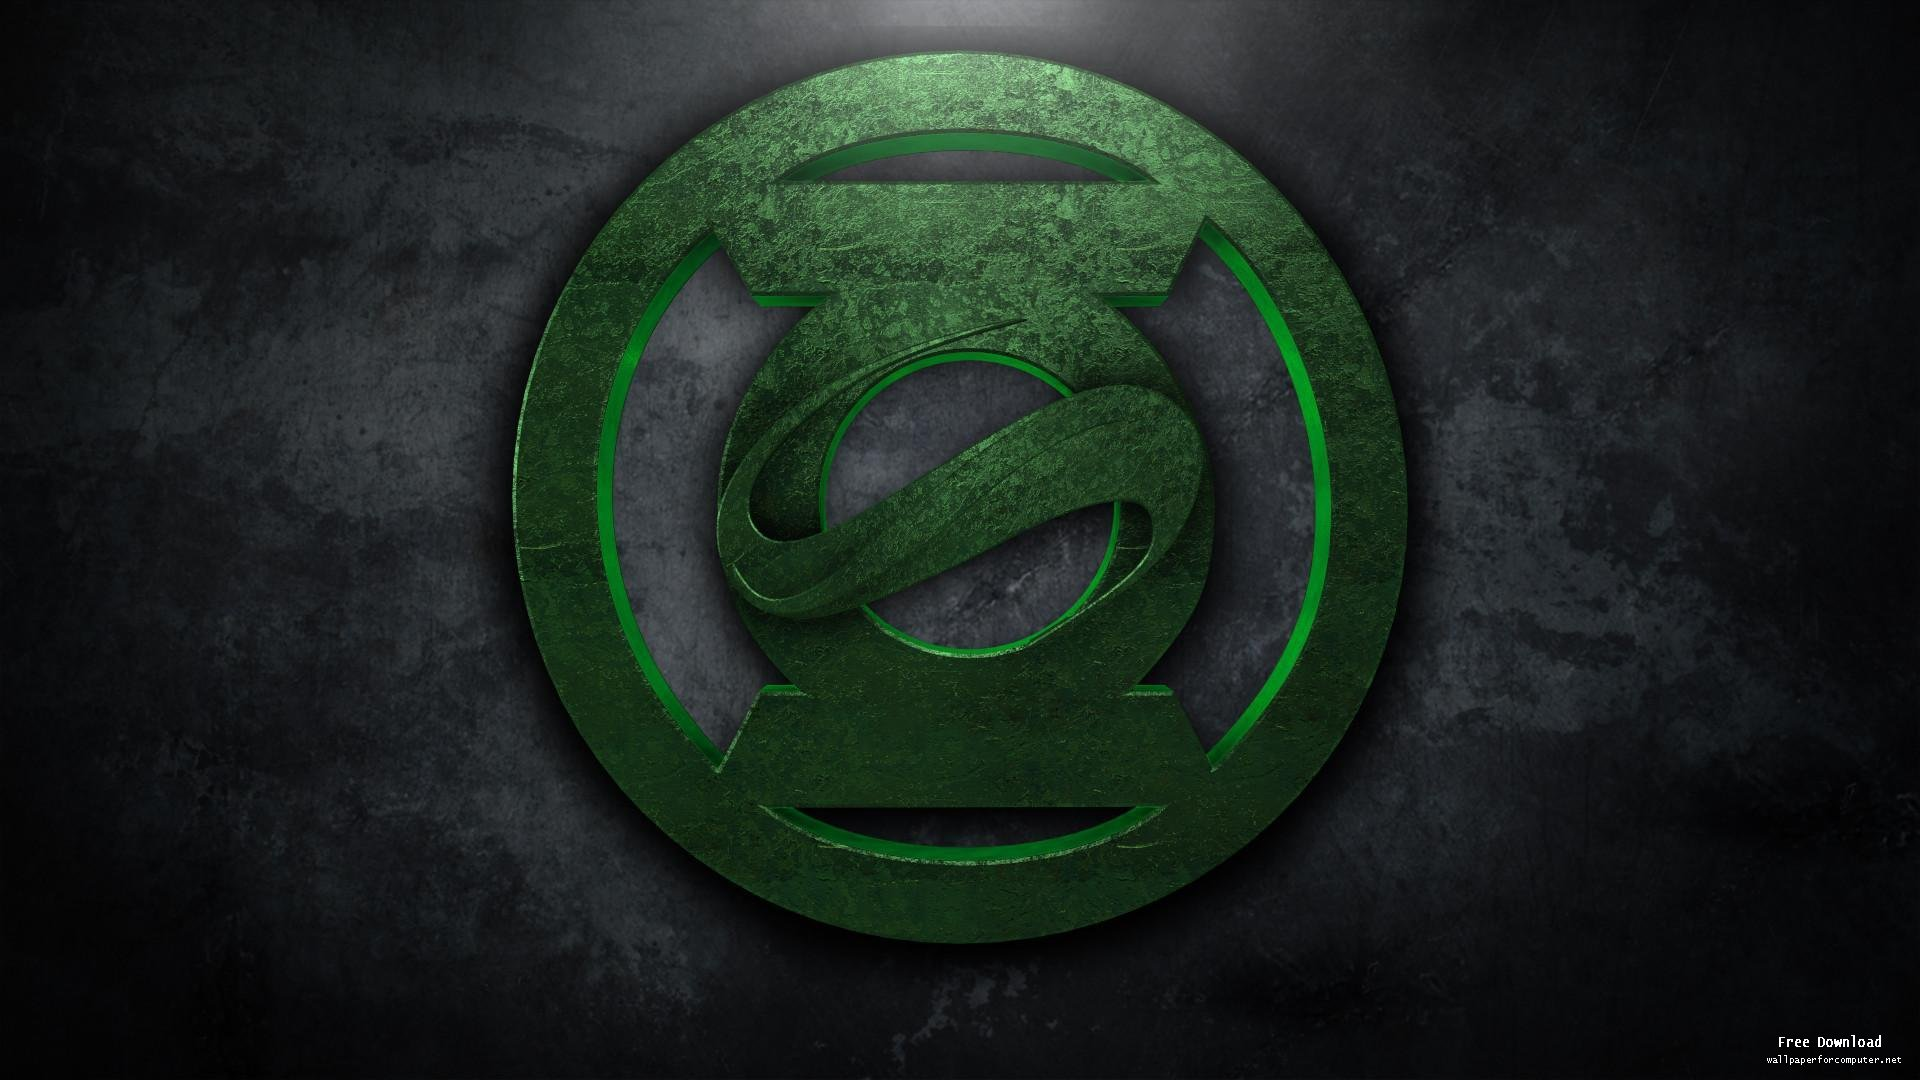 Green Lantern logo Wallpapers for Computer 218   HD Wallpapers Site 1920x1080